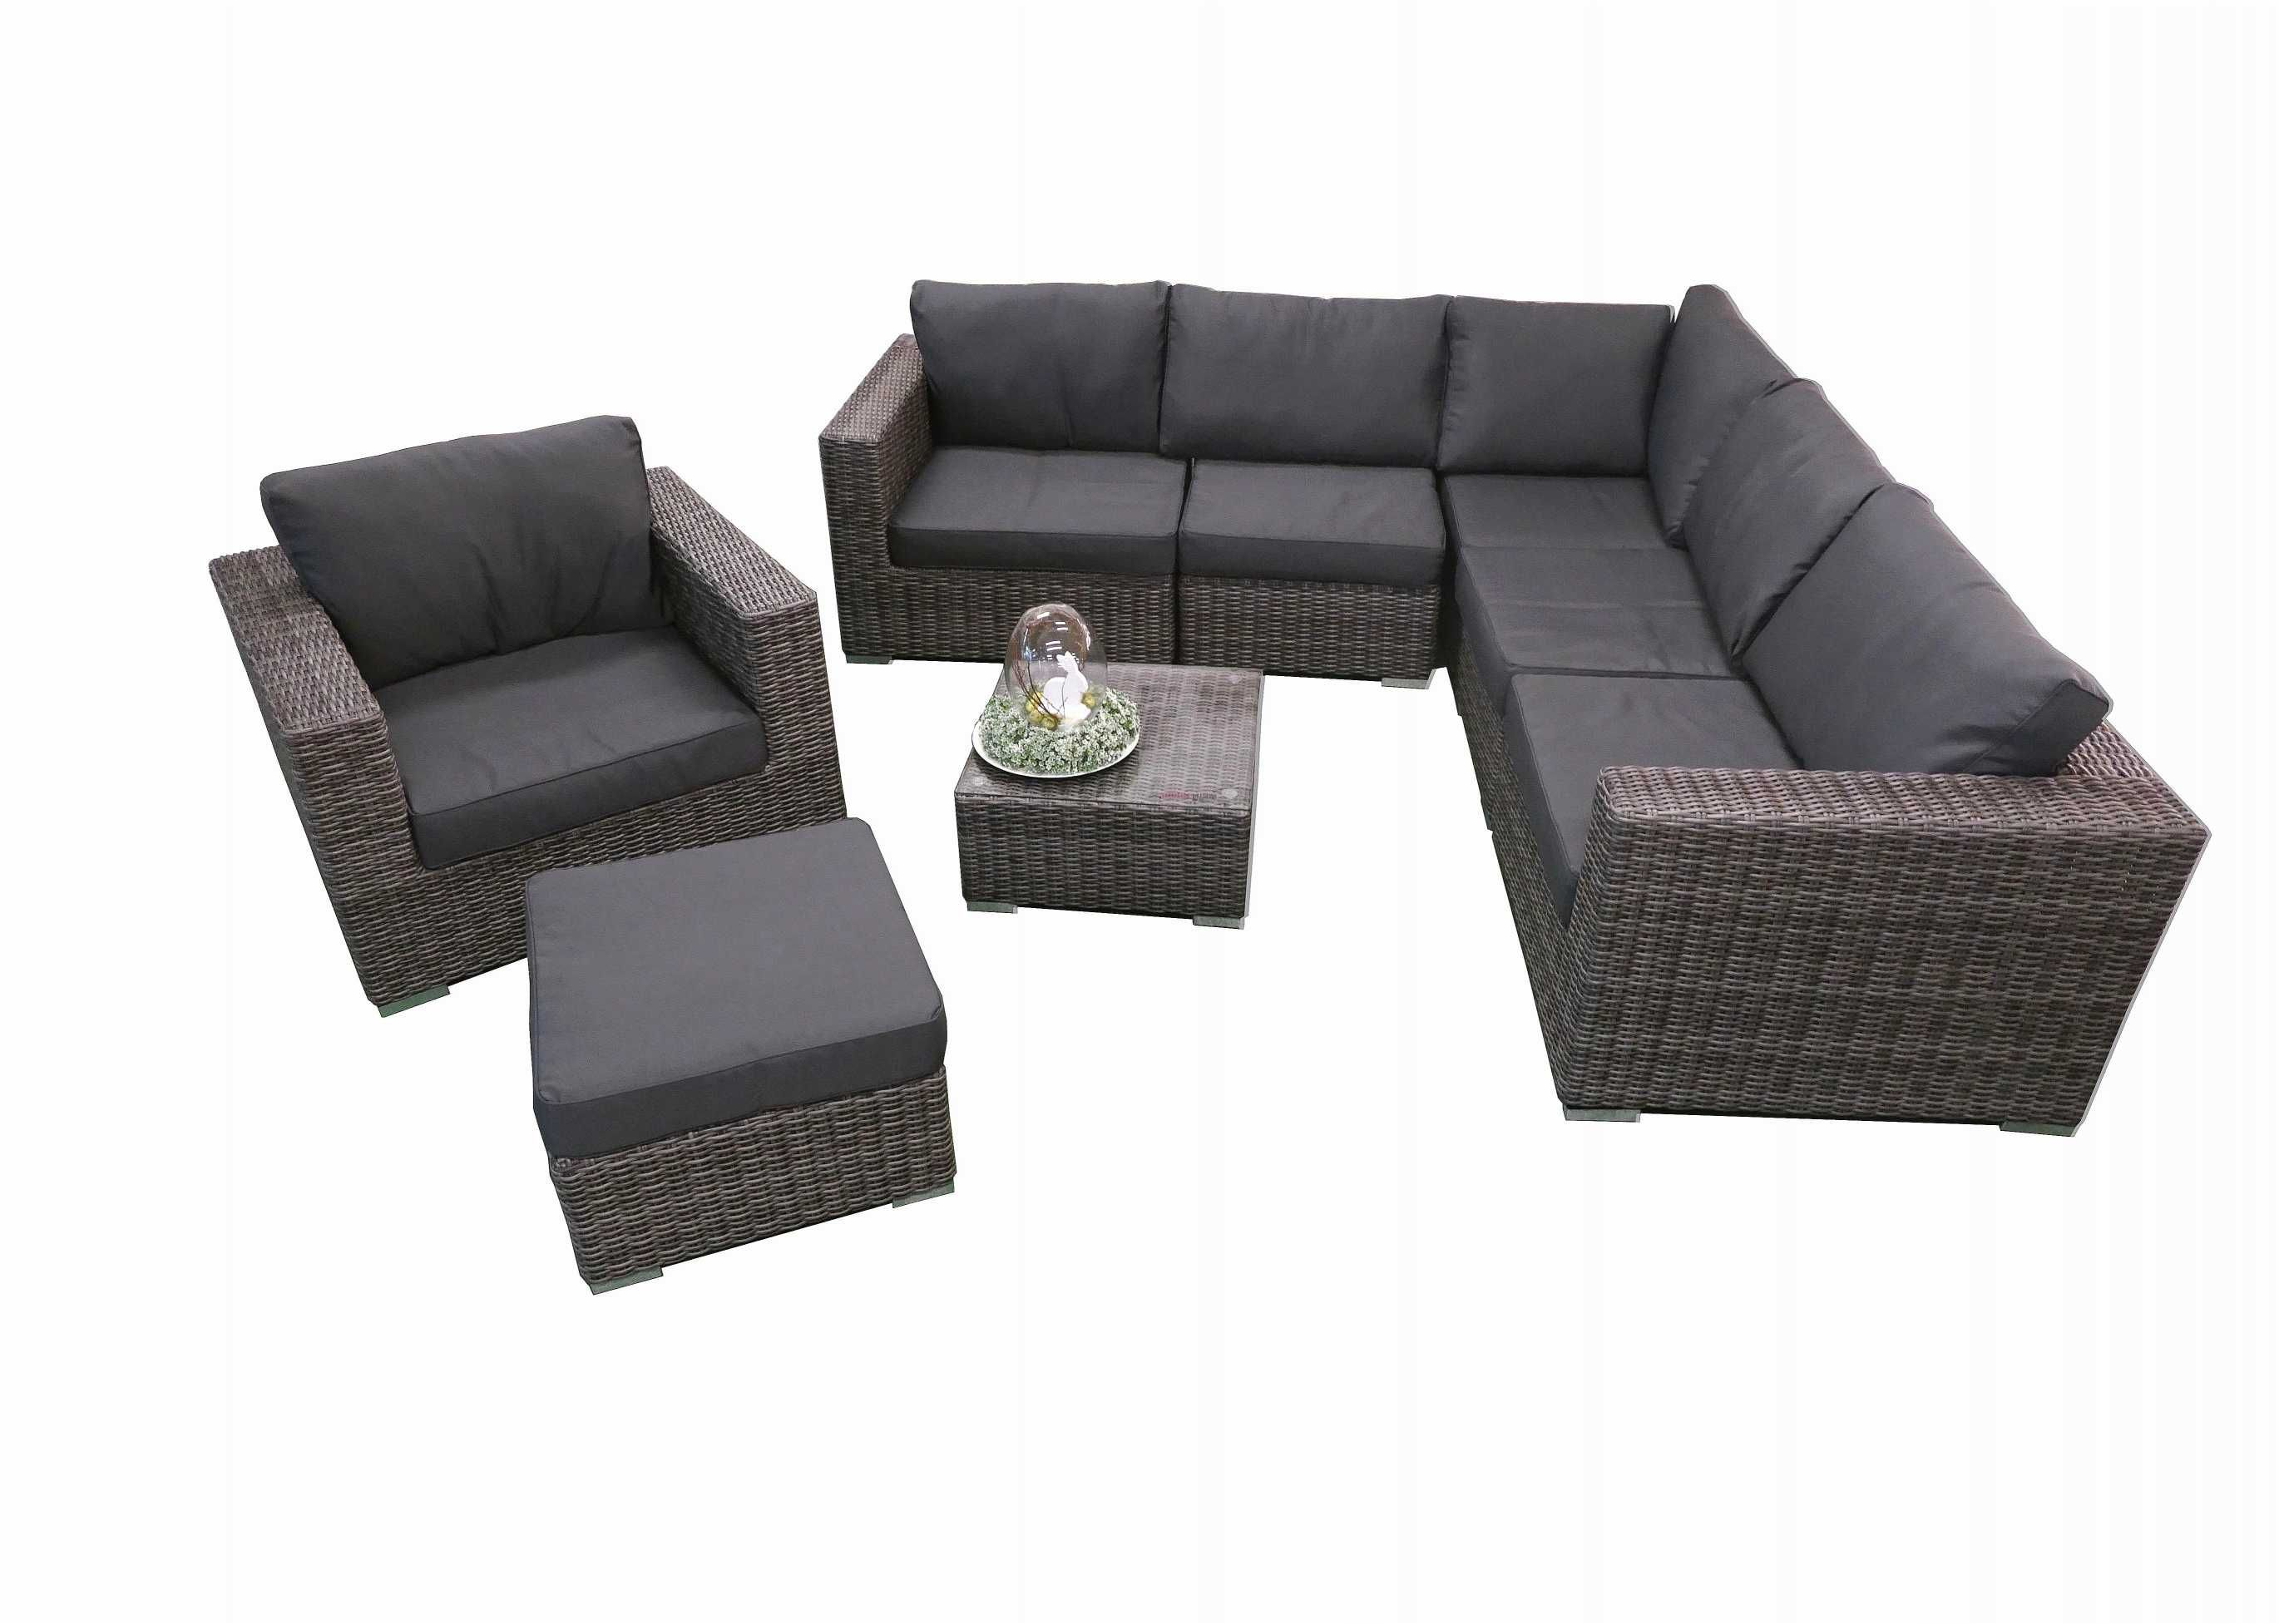 Keter Garden Furniture Covers Lovely 25 Awesome Rattan Chaise Lounge Cushions Scheme Of